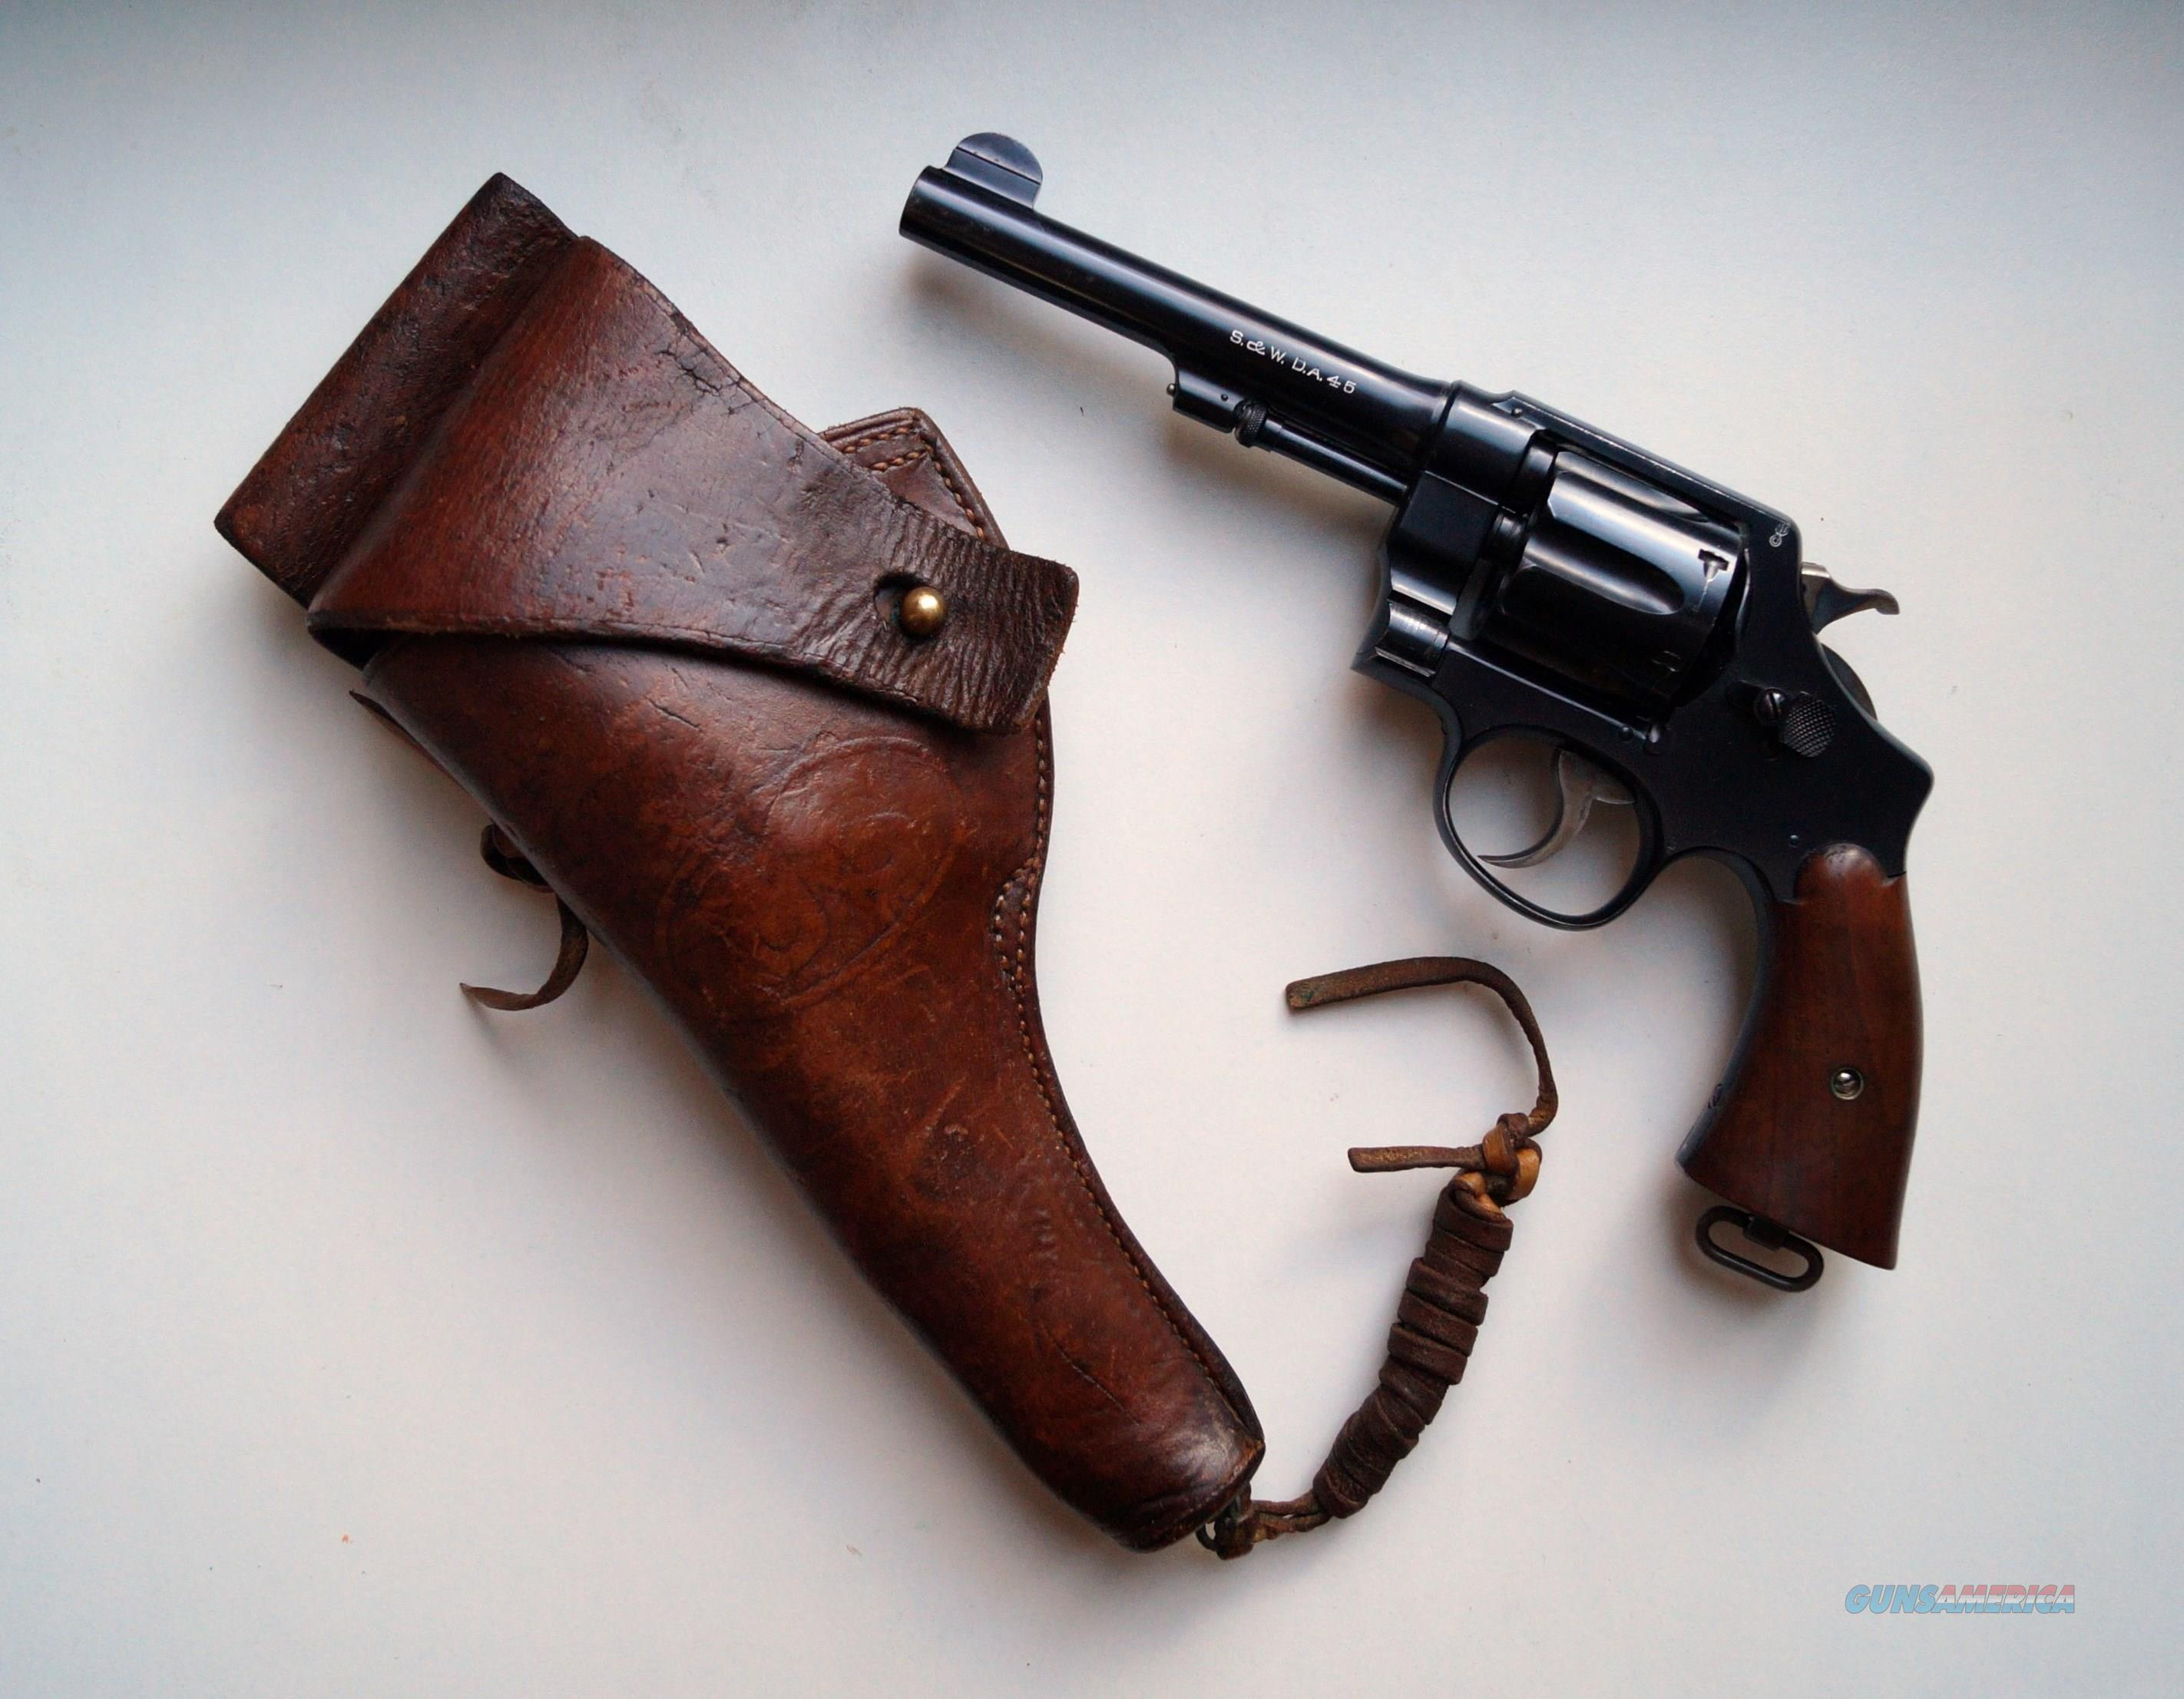 SMITH & WESSON MODEL 1917 U.S. ARMY REVOLVER / .45 CAL WITH ORIGINAL HOLSTER  Guns > Pistols > Smith & Wesson Revolvers > Pre-1945